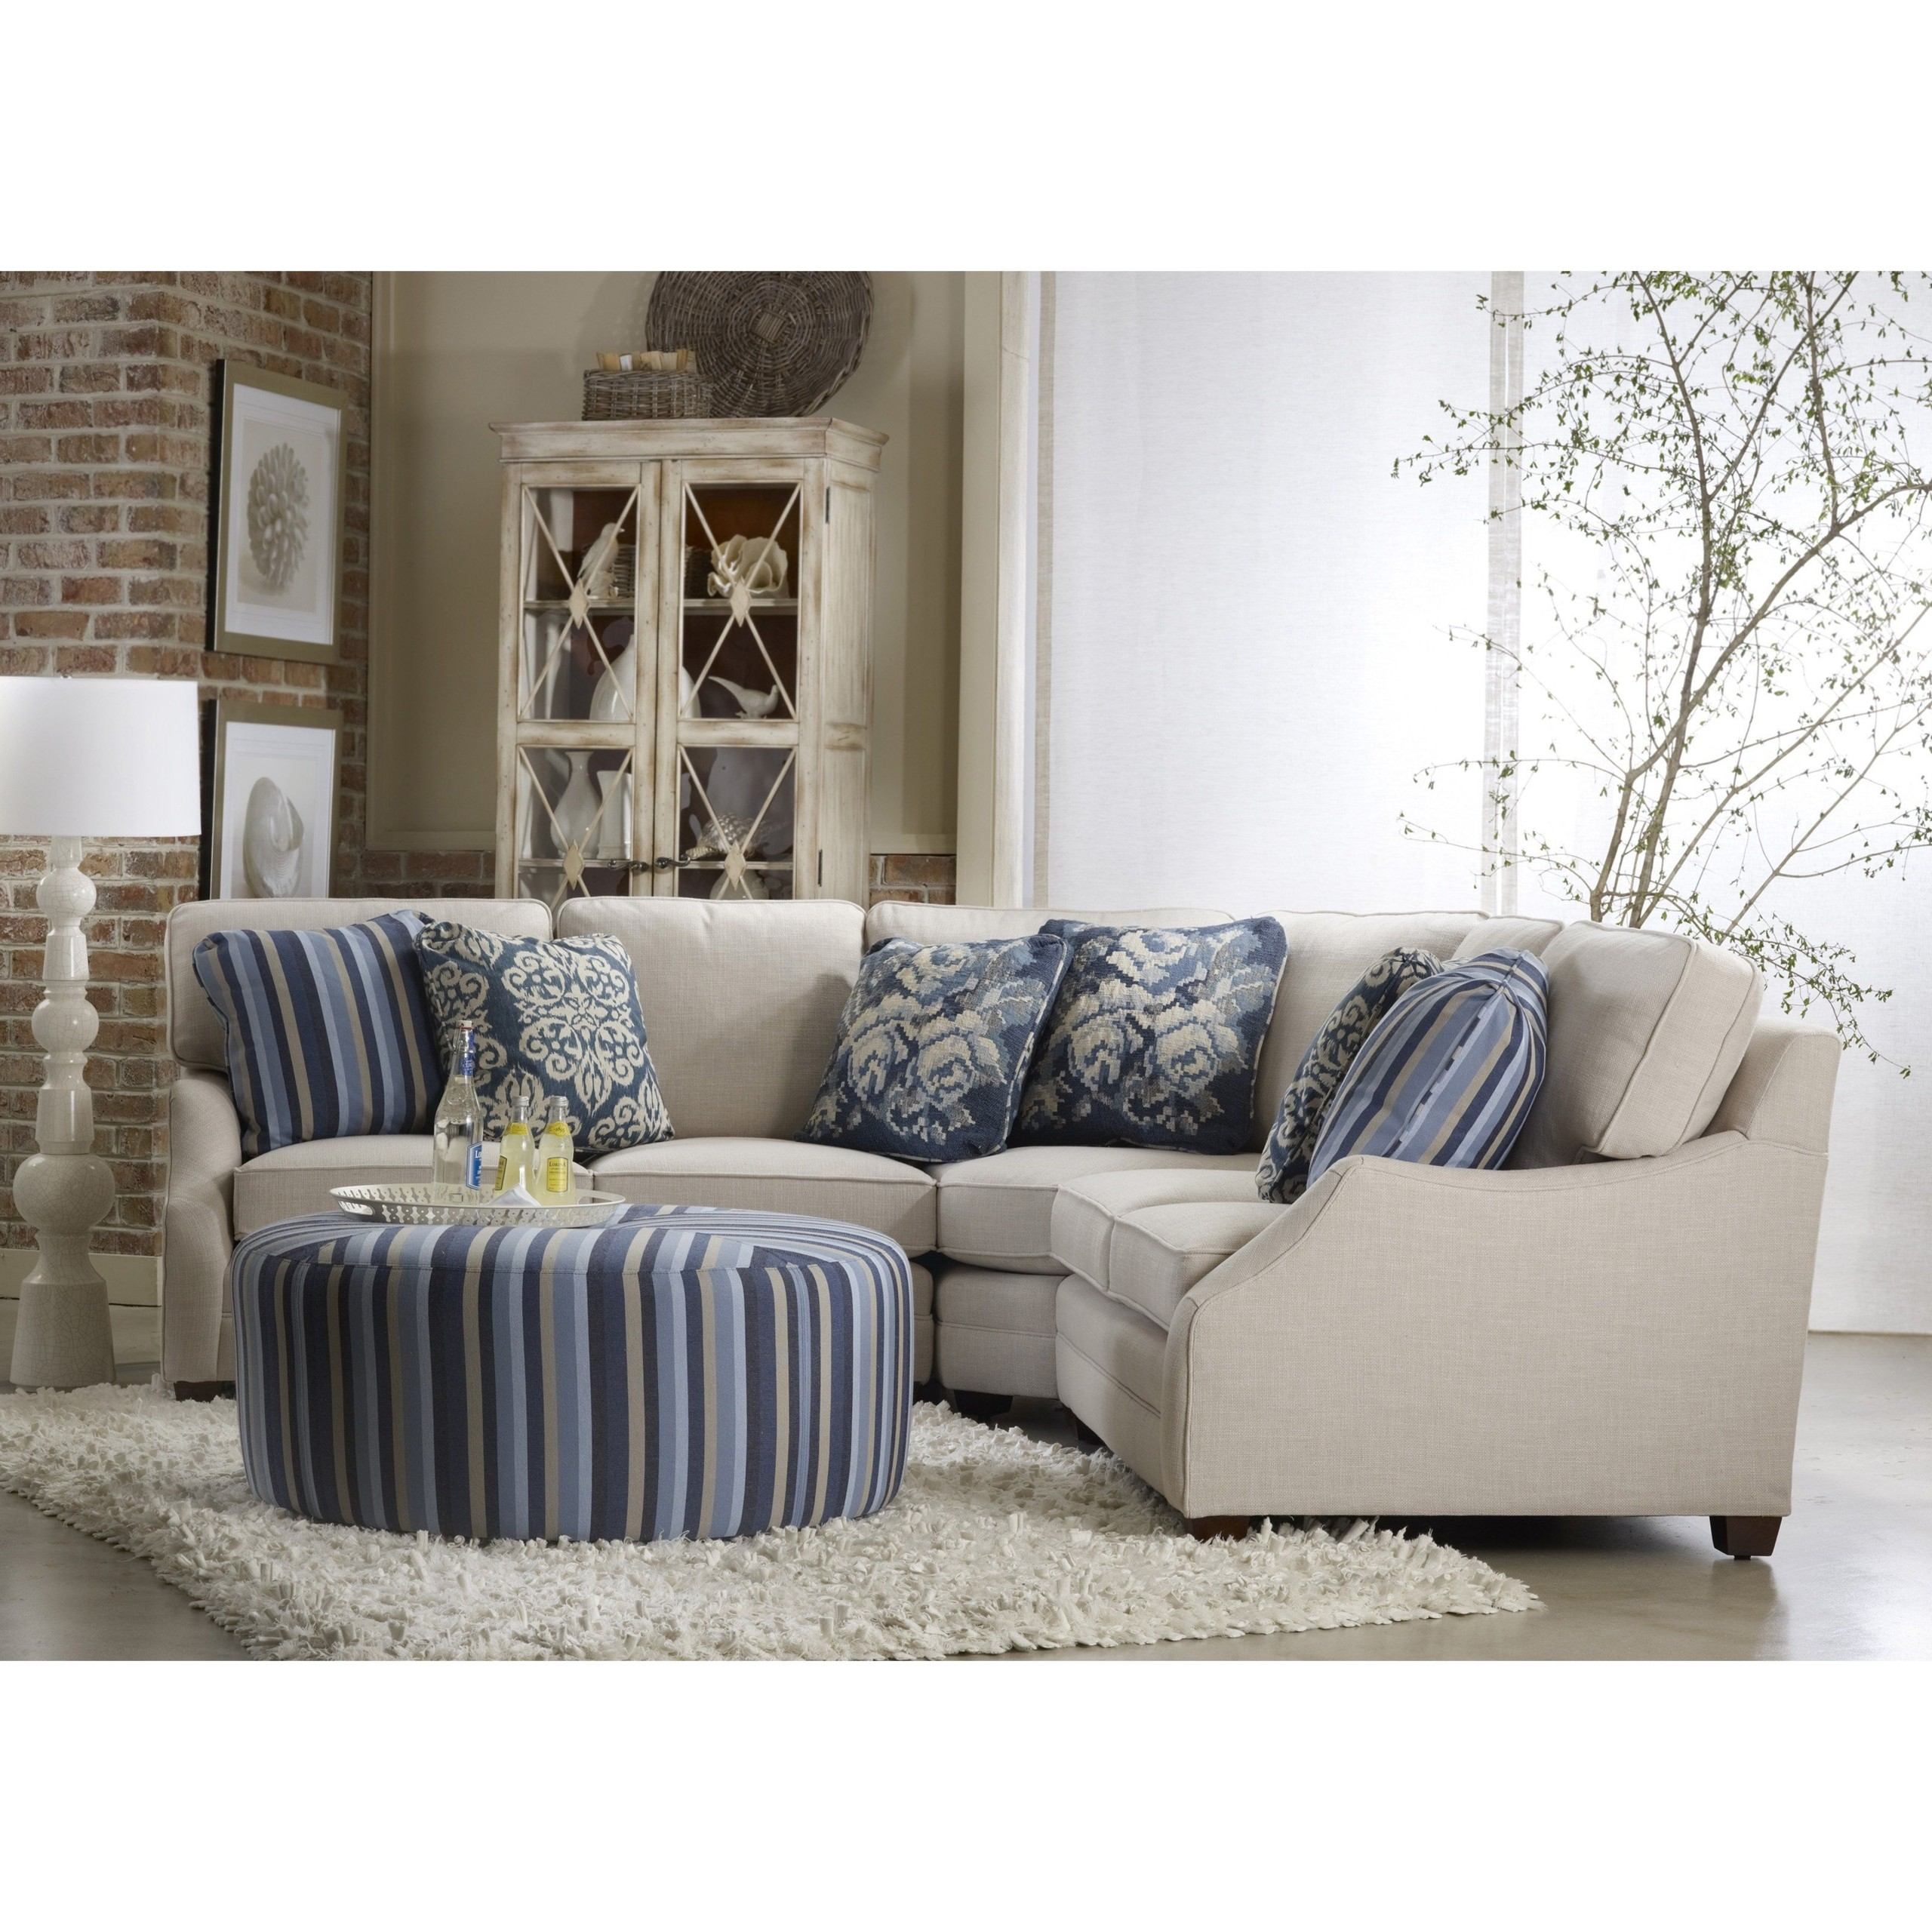 small sectional sofa with recliner ideas on foter rh foter com small sectionals with recliners small sectional sofa with recliner and chaise